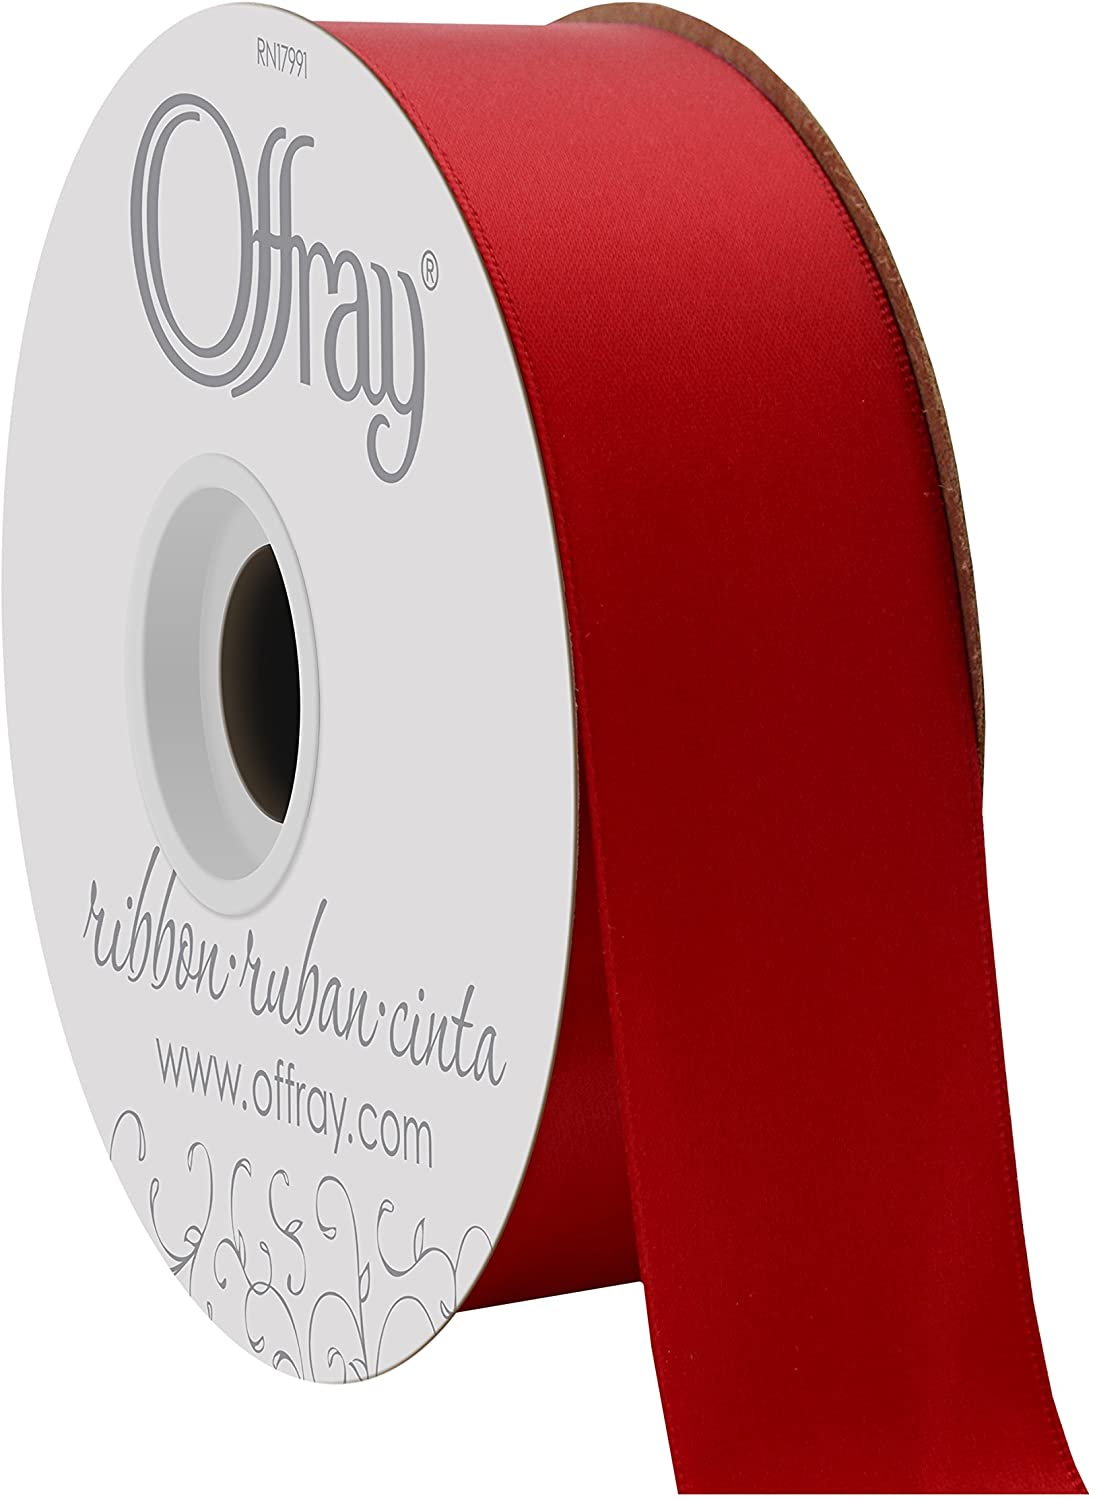 Offray 1.5 Wide Double Face Satin Ribbon Red50Yds, 50 Yards, Red